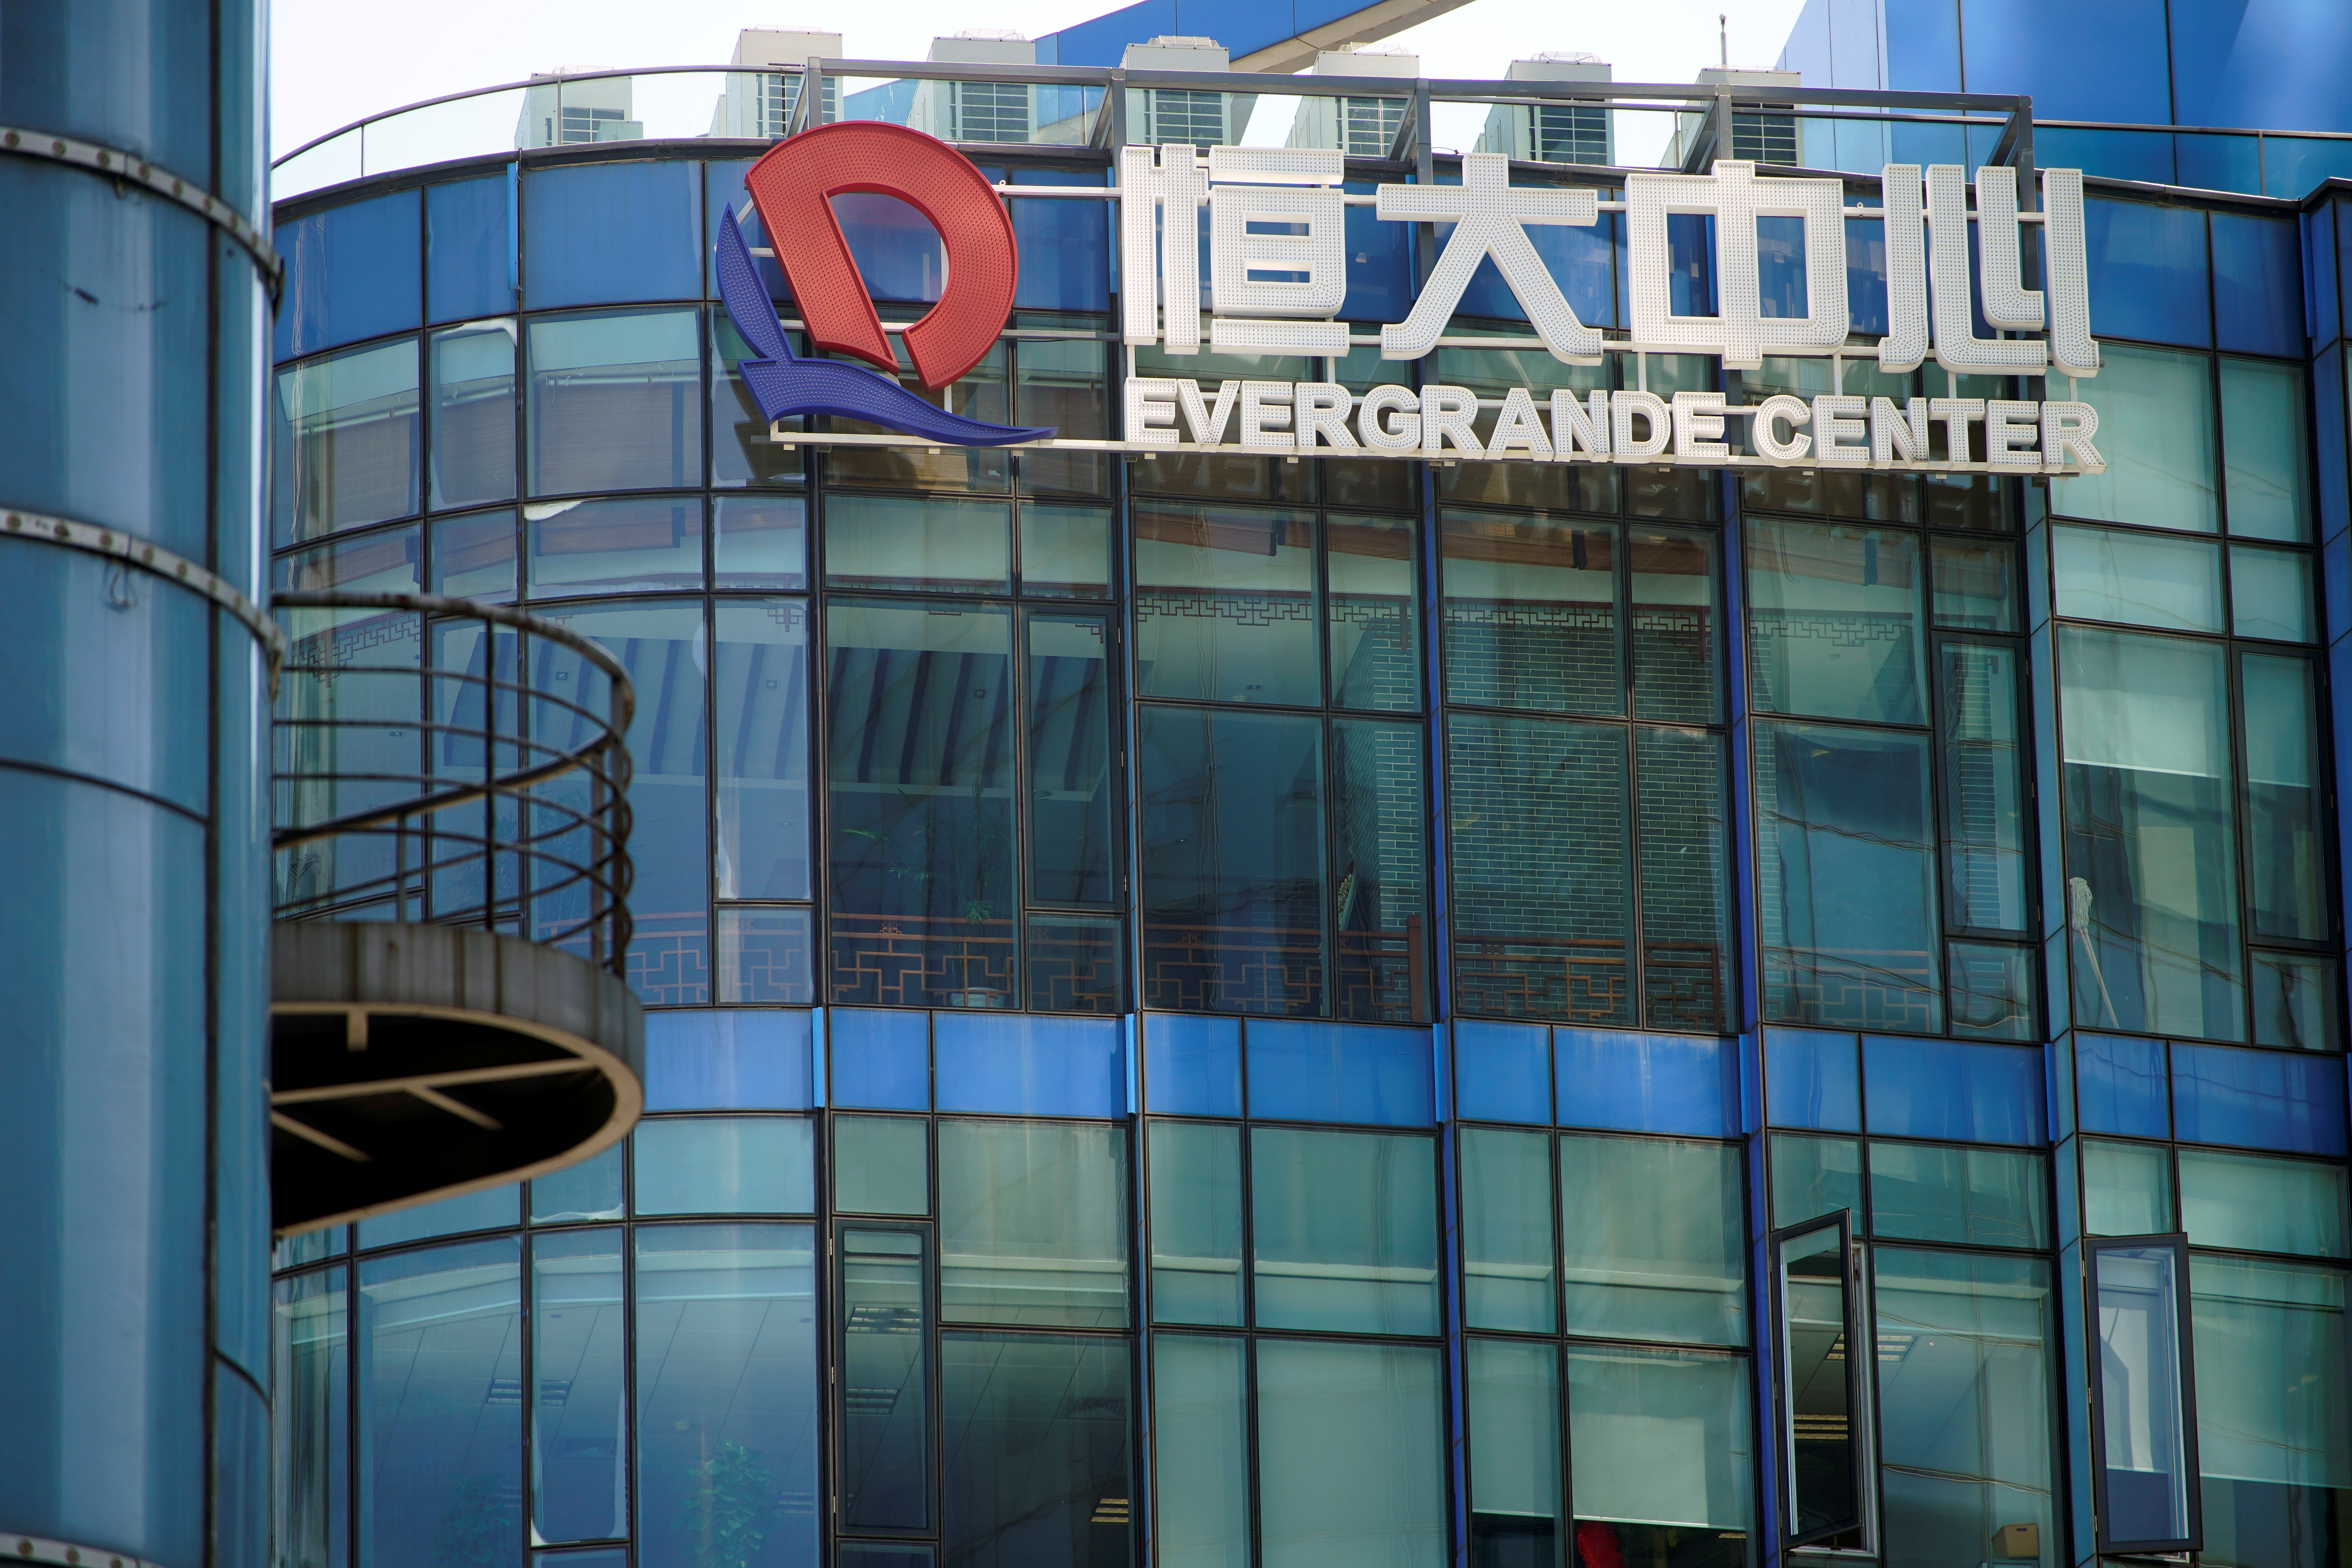 The logo of China Evergrande Group seen on the Evergrande Center in Shanghai, China September 22, 2021. REUTERS/Aly Song REFILE - QUALITY REPEAT